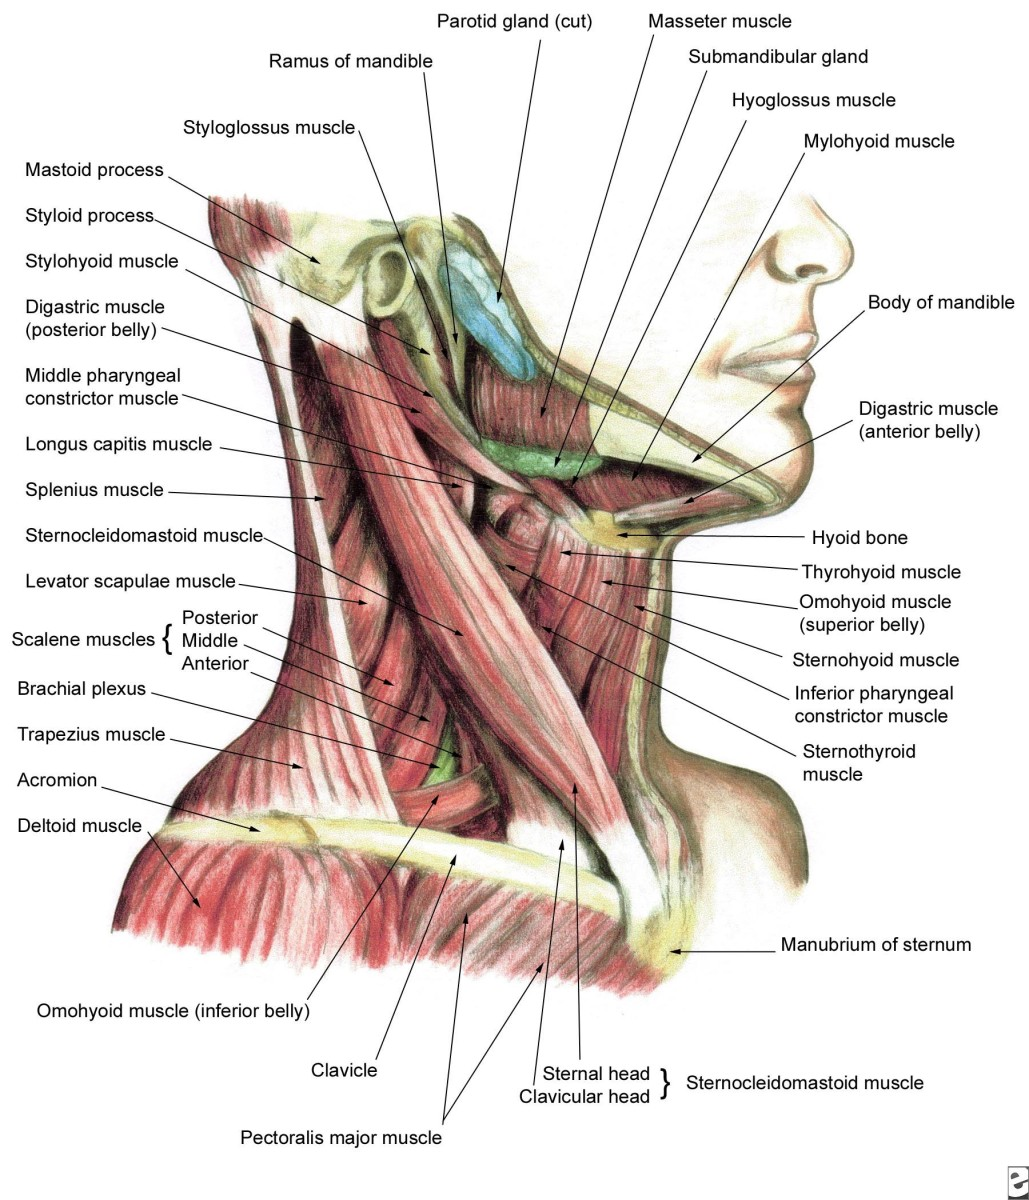 Human anatomy and physiology of muscles hubpages courtesy of emedicinedscape ccuart Gallery